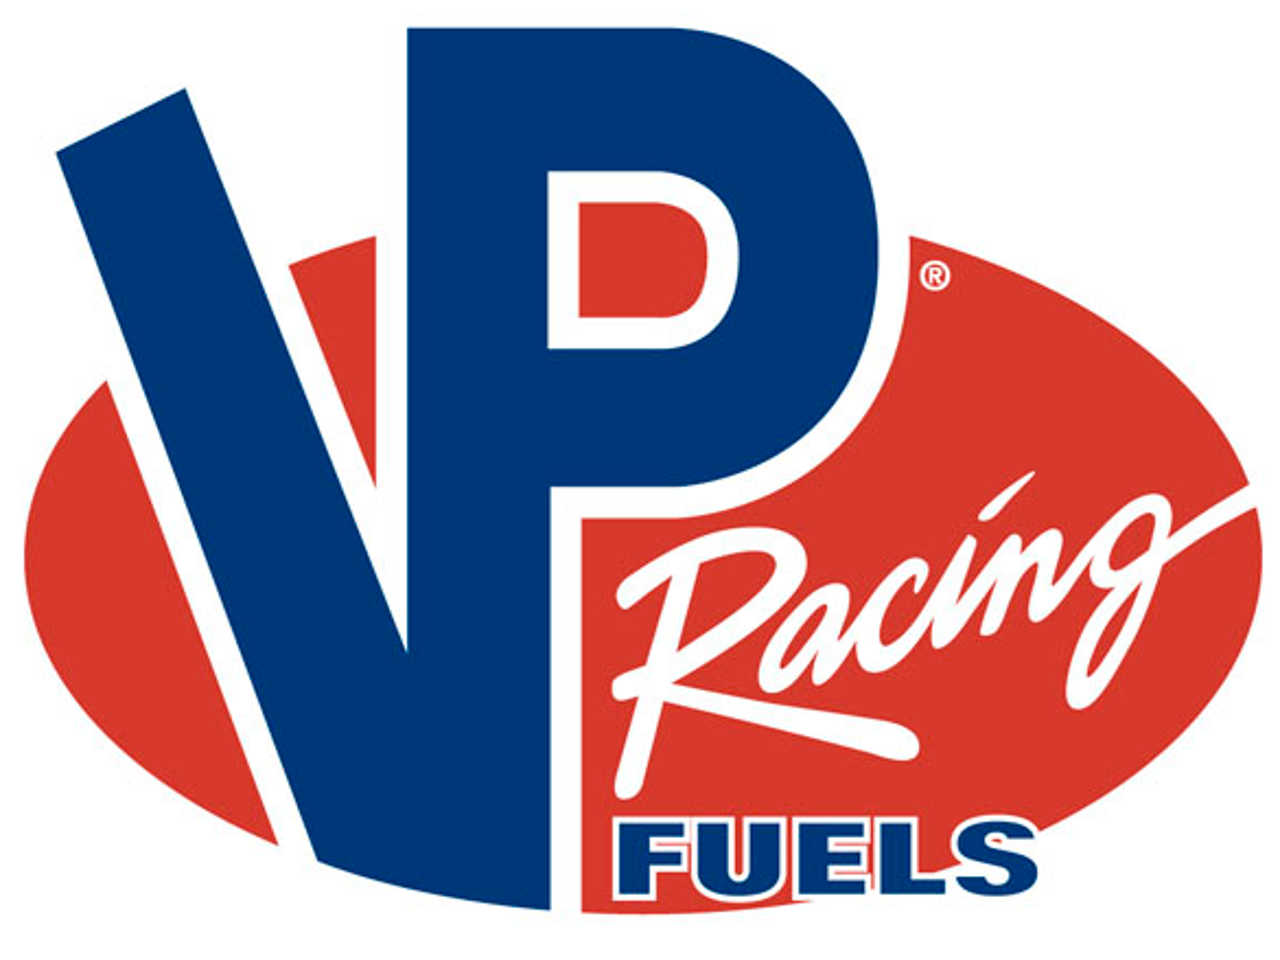 Mercury Fuel Partners with VP Racing Fuels in Retail Brand ...